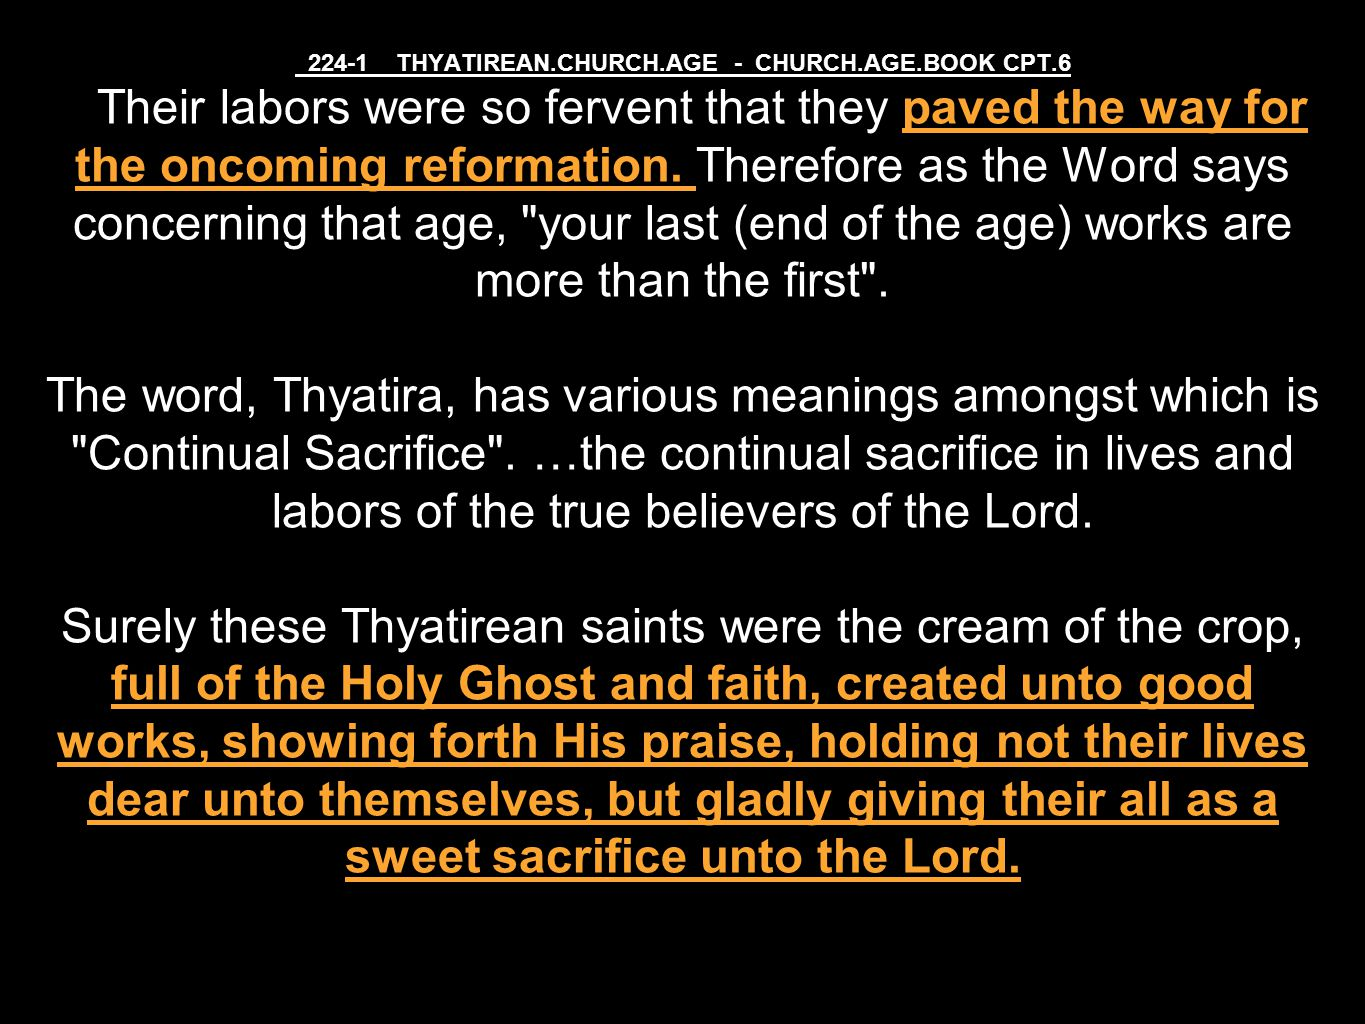 224-1 THYATIREAN.CHURCH.AGE - CHURCH.AGE.BOOK CPT.6 Their labors were so fervent that they paved the way for the oncoming reformation.